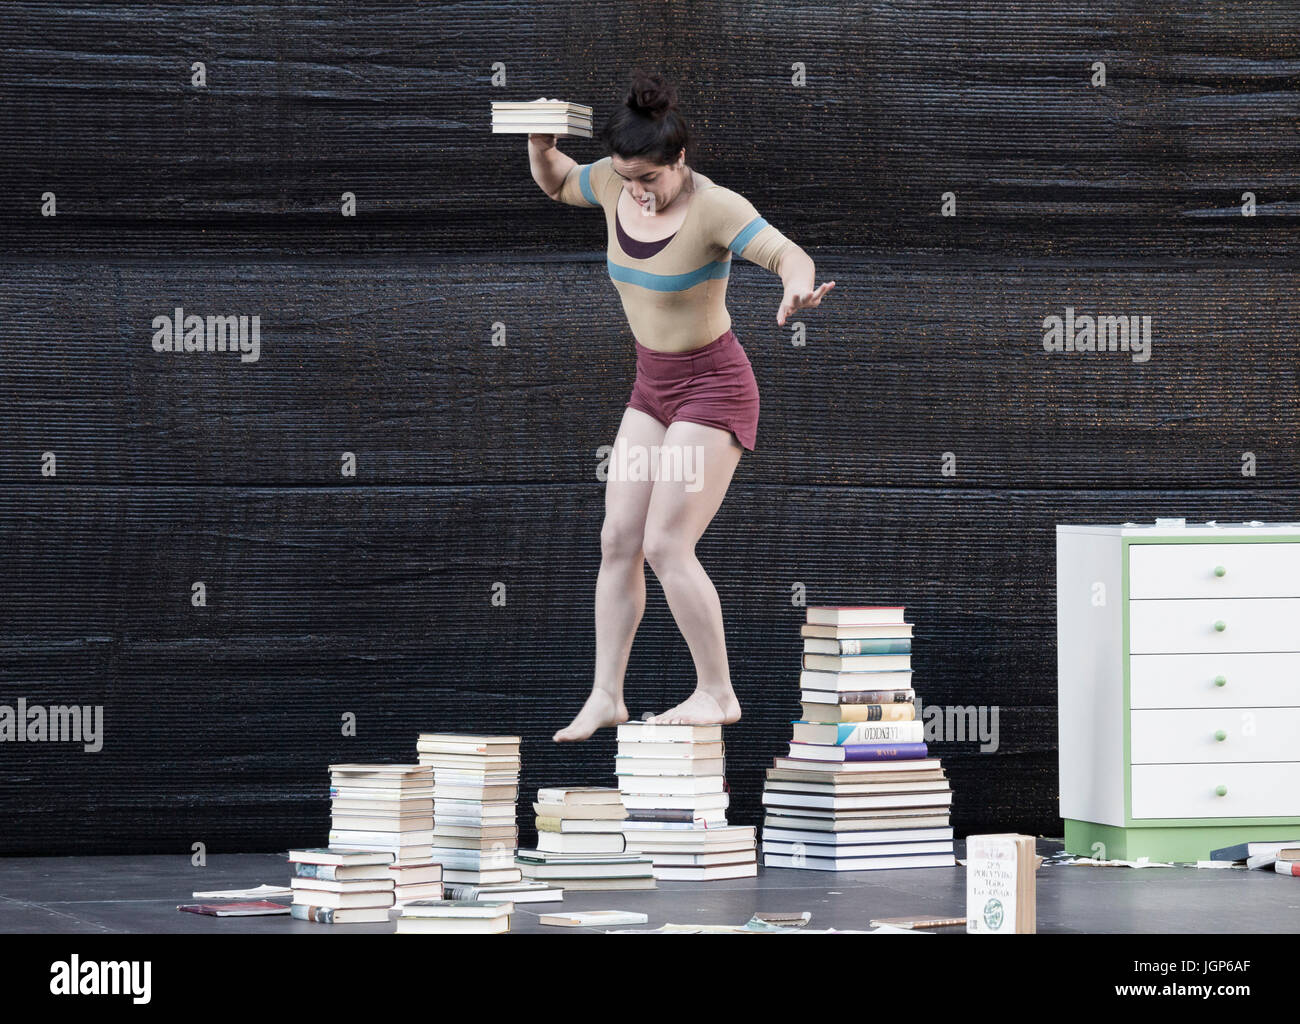 Performer at street art festival. - Stock Image